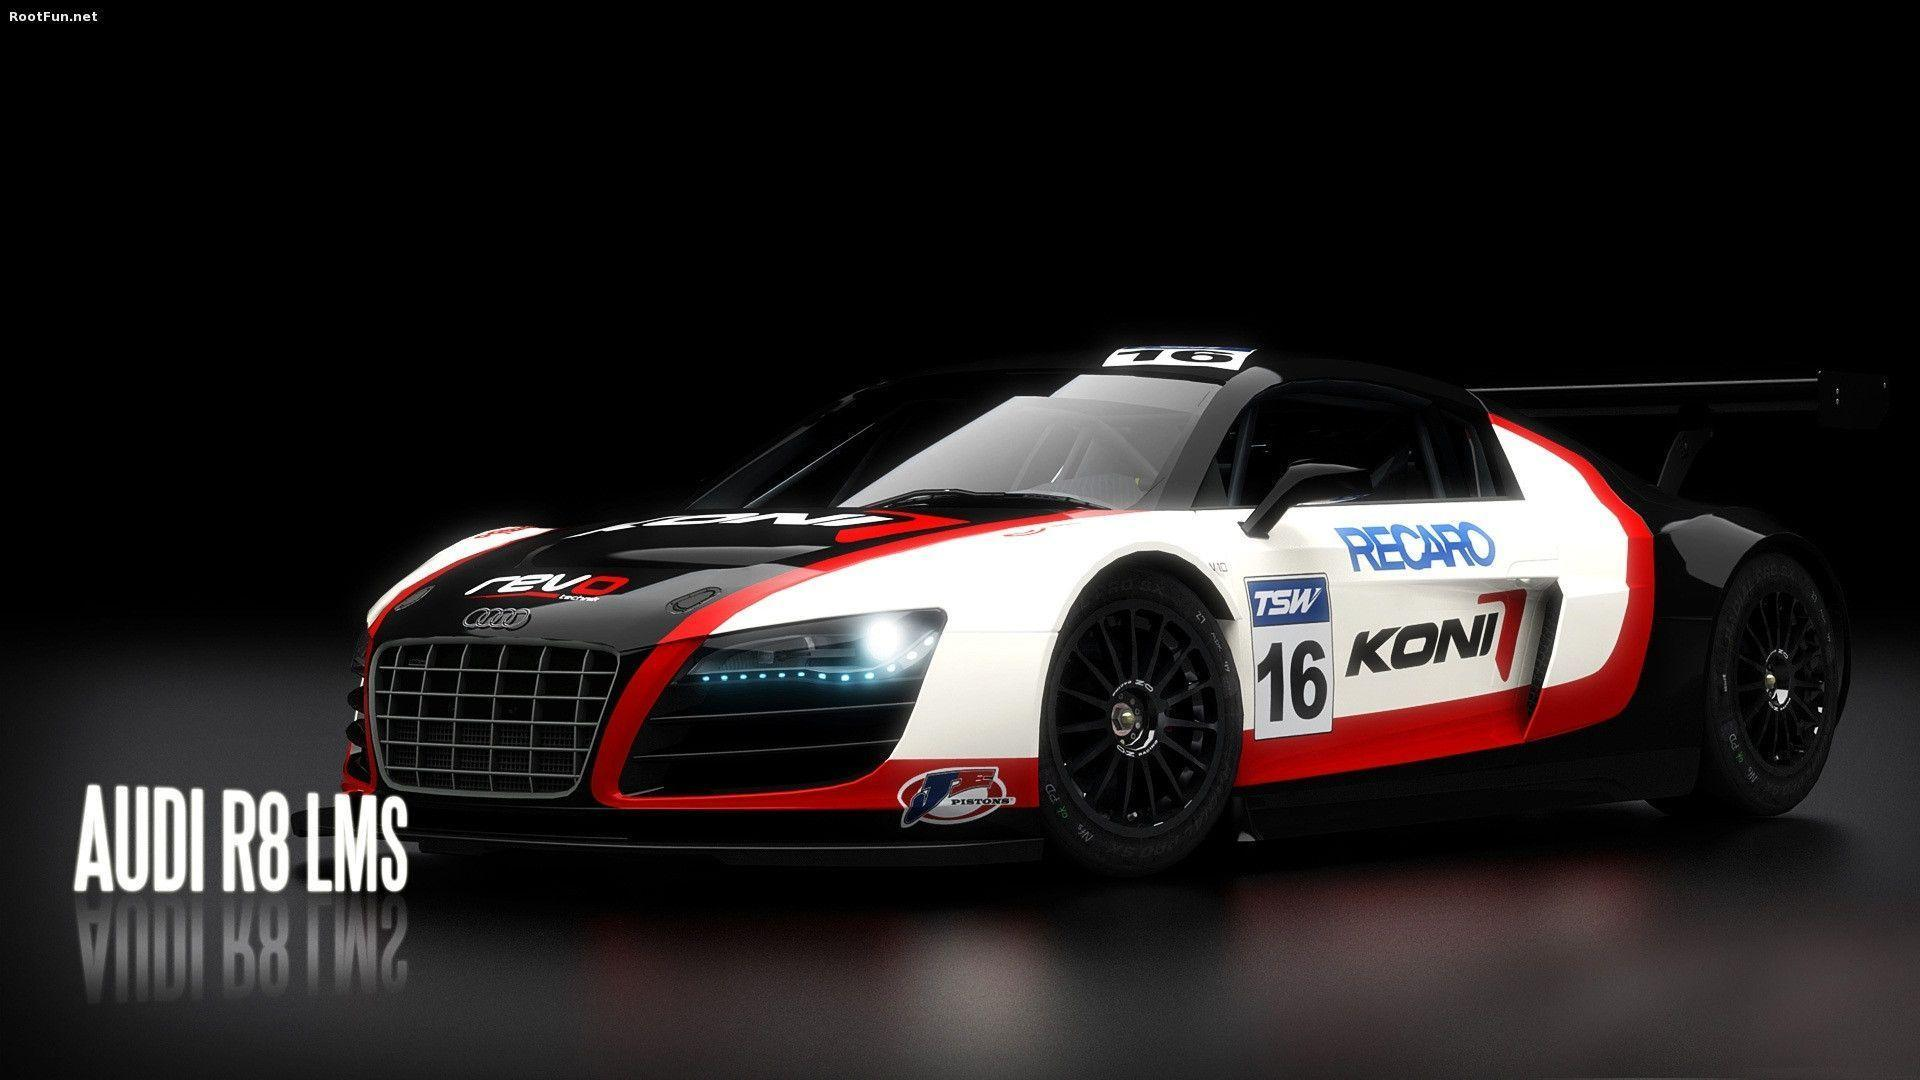 audi r8 lms hd Wallpapers